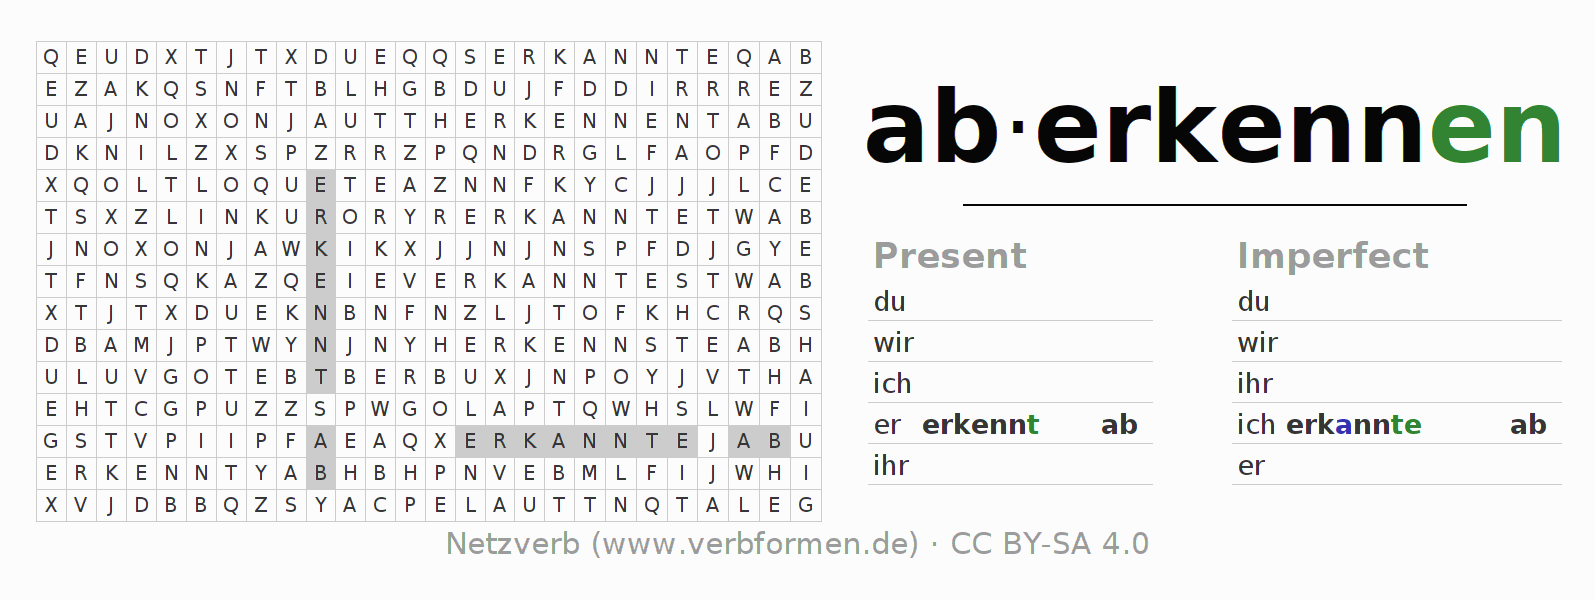 Word search puzzle for the conjugation of the verb aberkennen